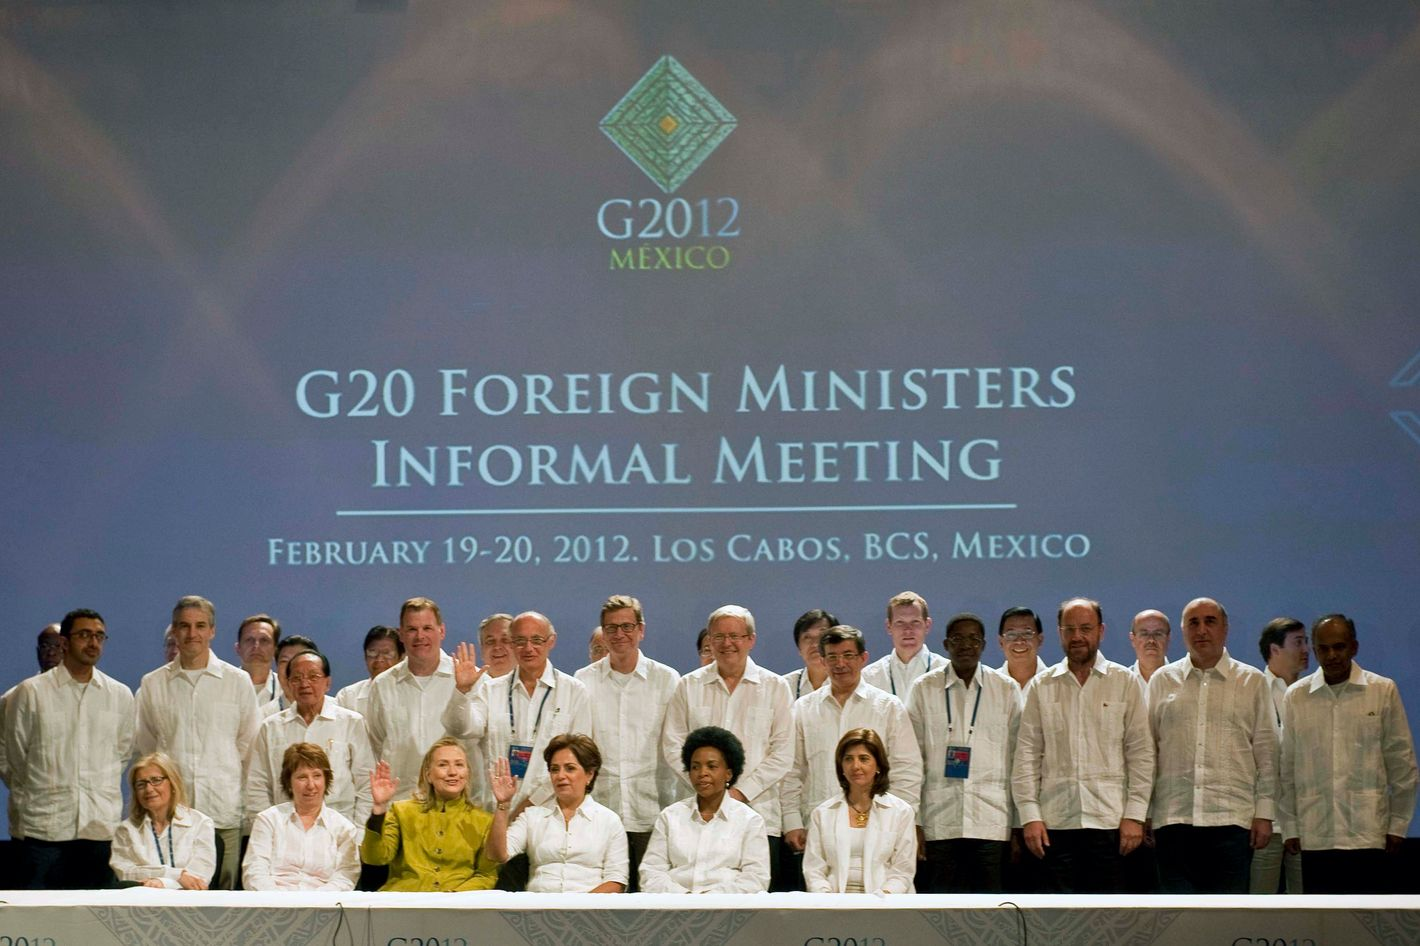 US Secretary of State Hillary Rodham Clinton(C front), Catherine Ashton, EU High Representative for Foreign and Security Policy (L front), Mexico's Foreign Minister Patricia Espinosa (2ndR), and South Africia's Foreign Minister Maite Nkoana-Mashabane pose with other representatives during the G20 foreign ministers family photo in Los Cabos, Mexico, on February 20, 2012.